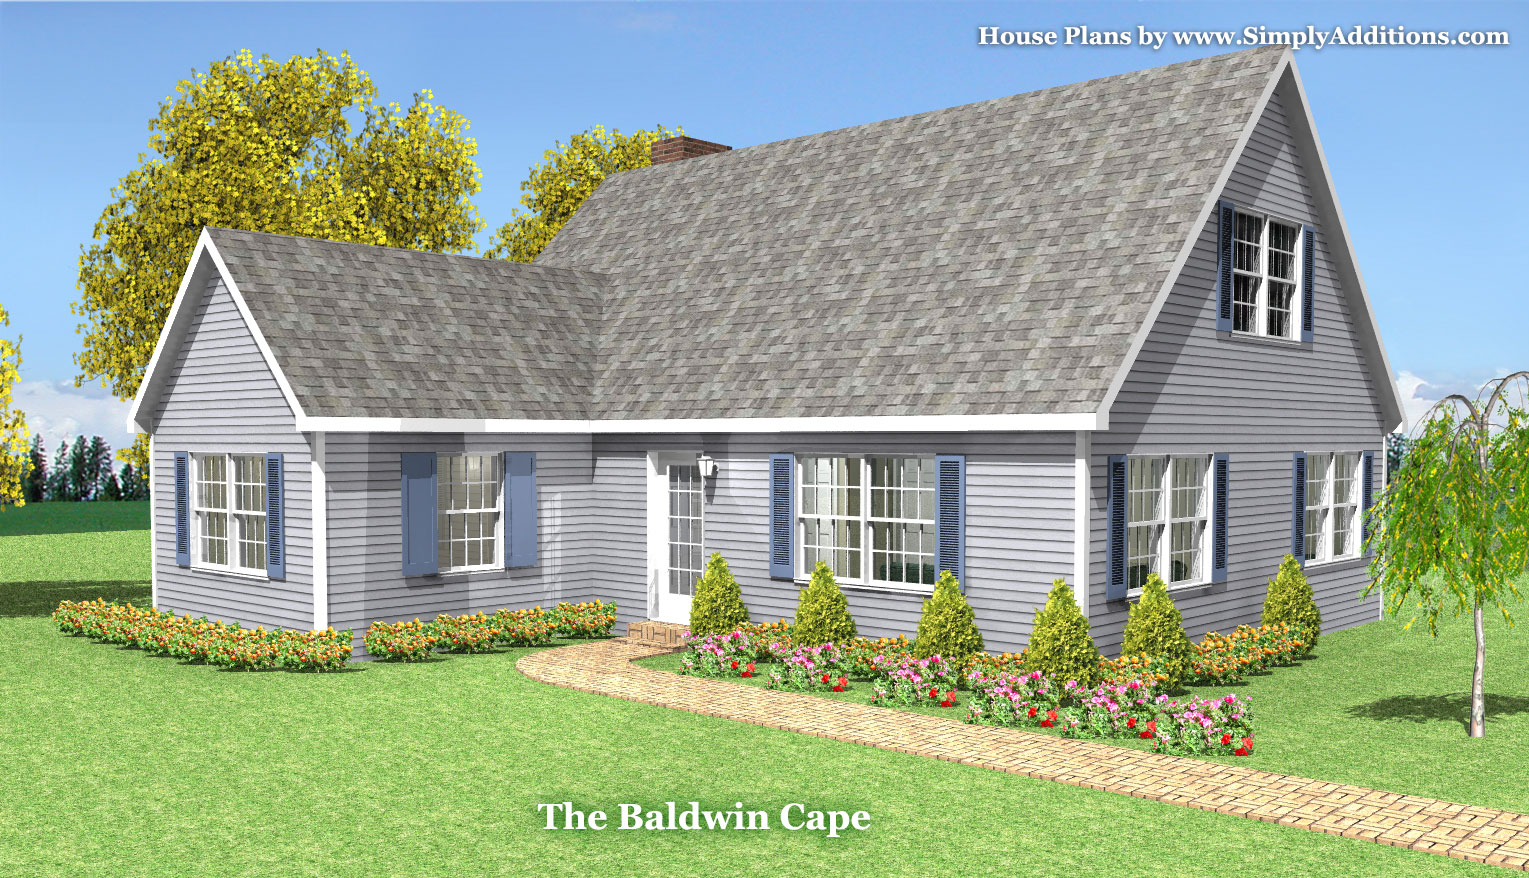 baldwin modular cape house plans. Black Bedroom Furniture Sets. Home Design Ideas